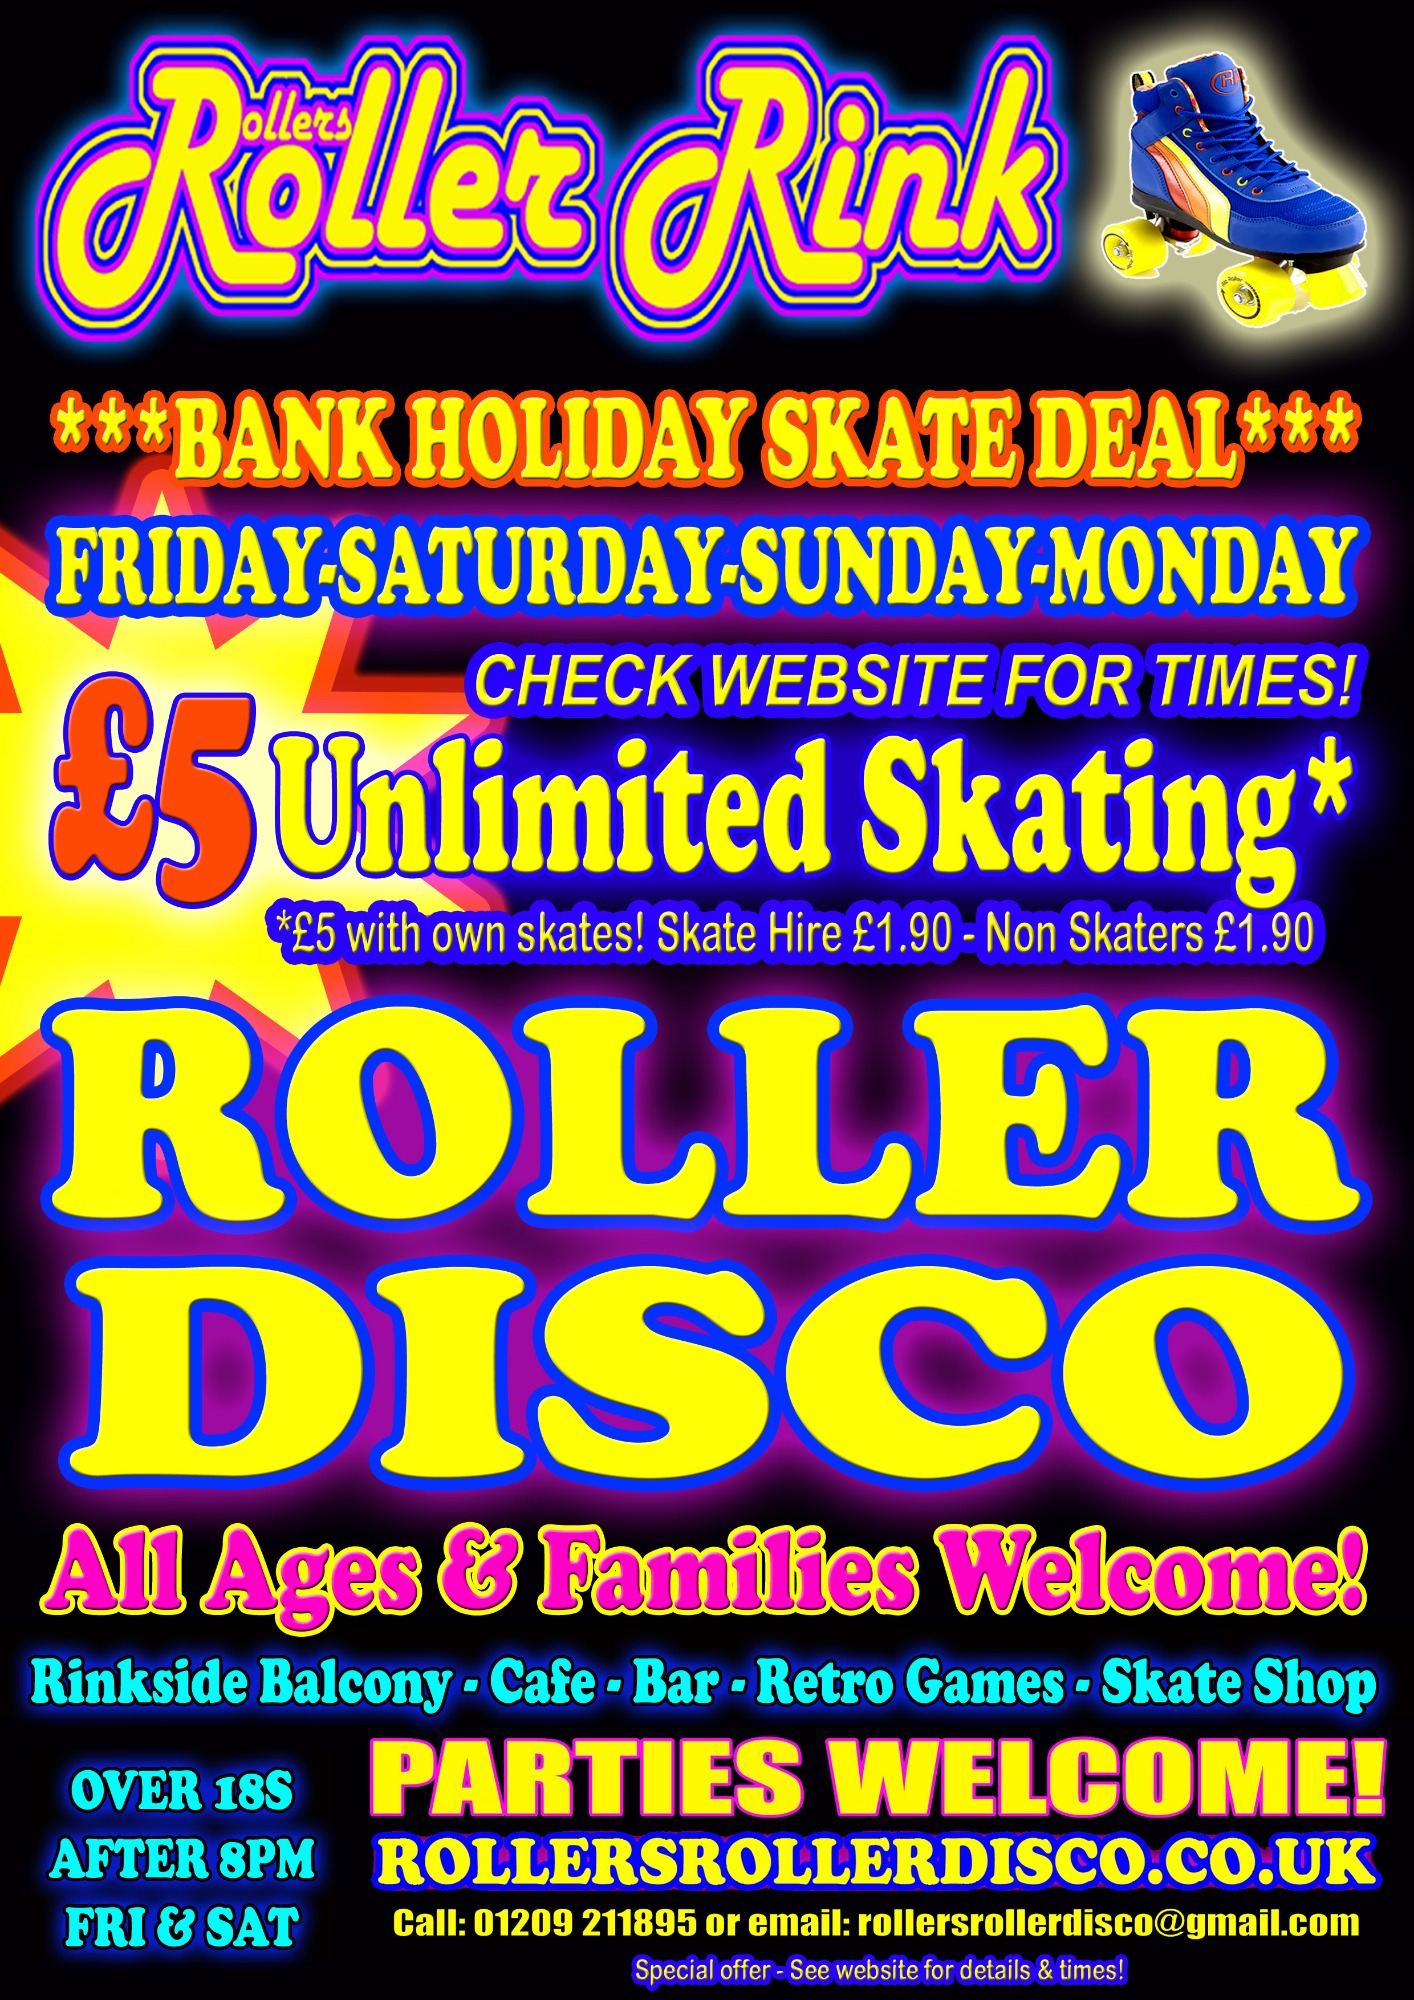 Whitsun Bank Holiday Roller Disco